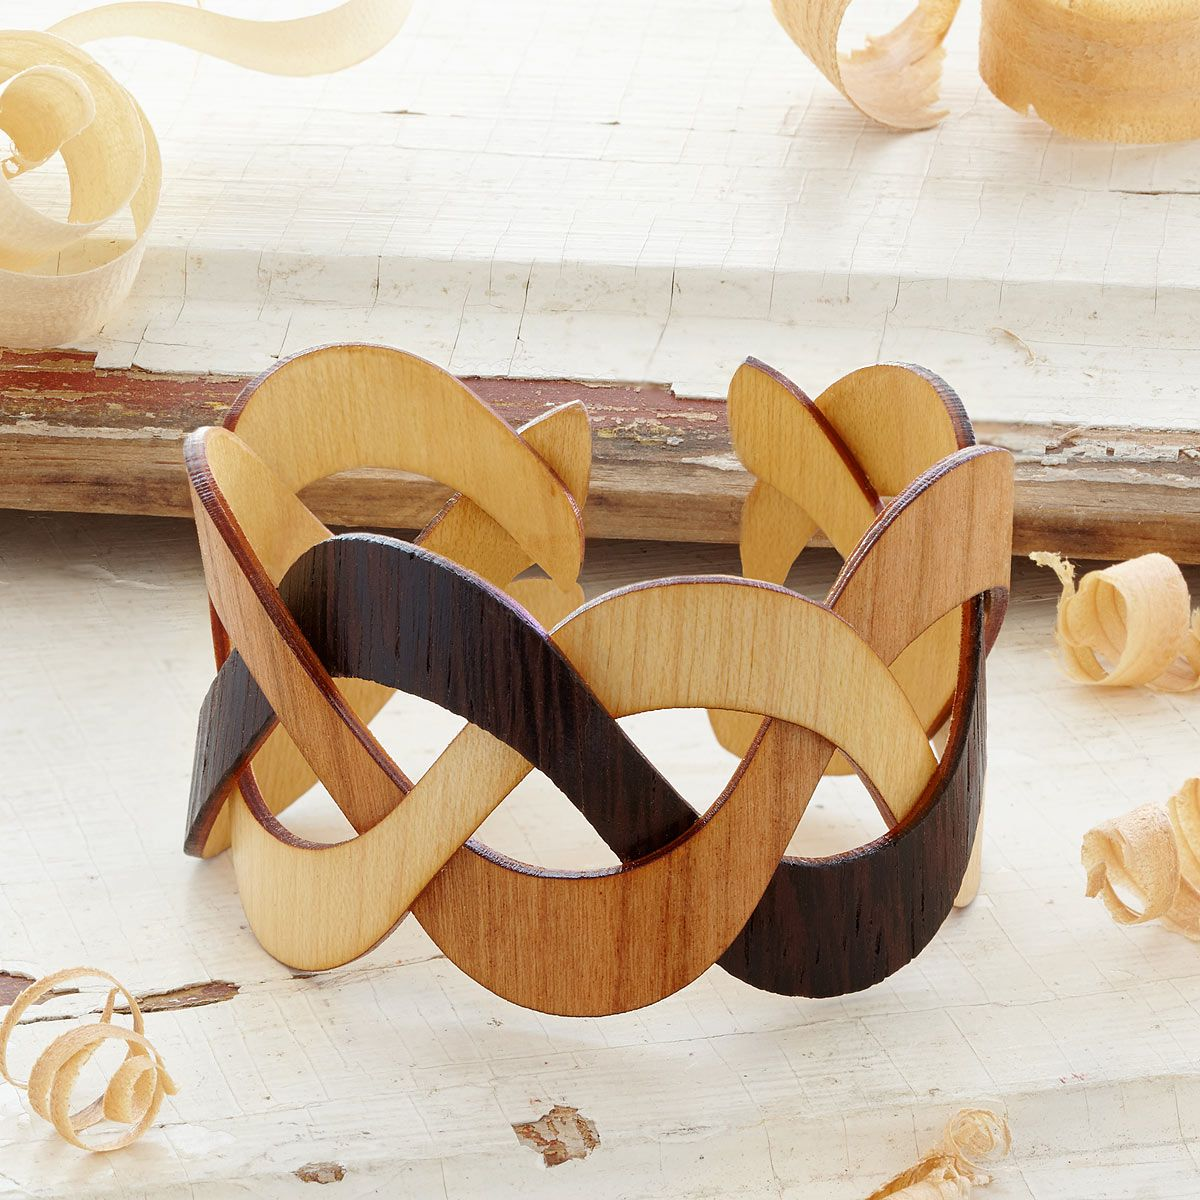 This striking, wooden cuff bracelet is made from thin, woven bands of cherry, walnut and rosewood.